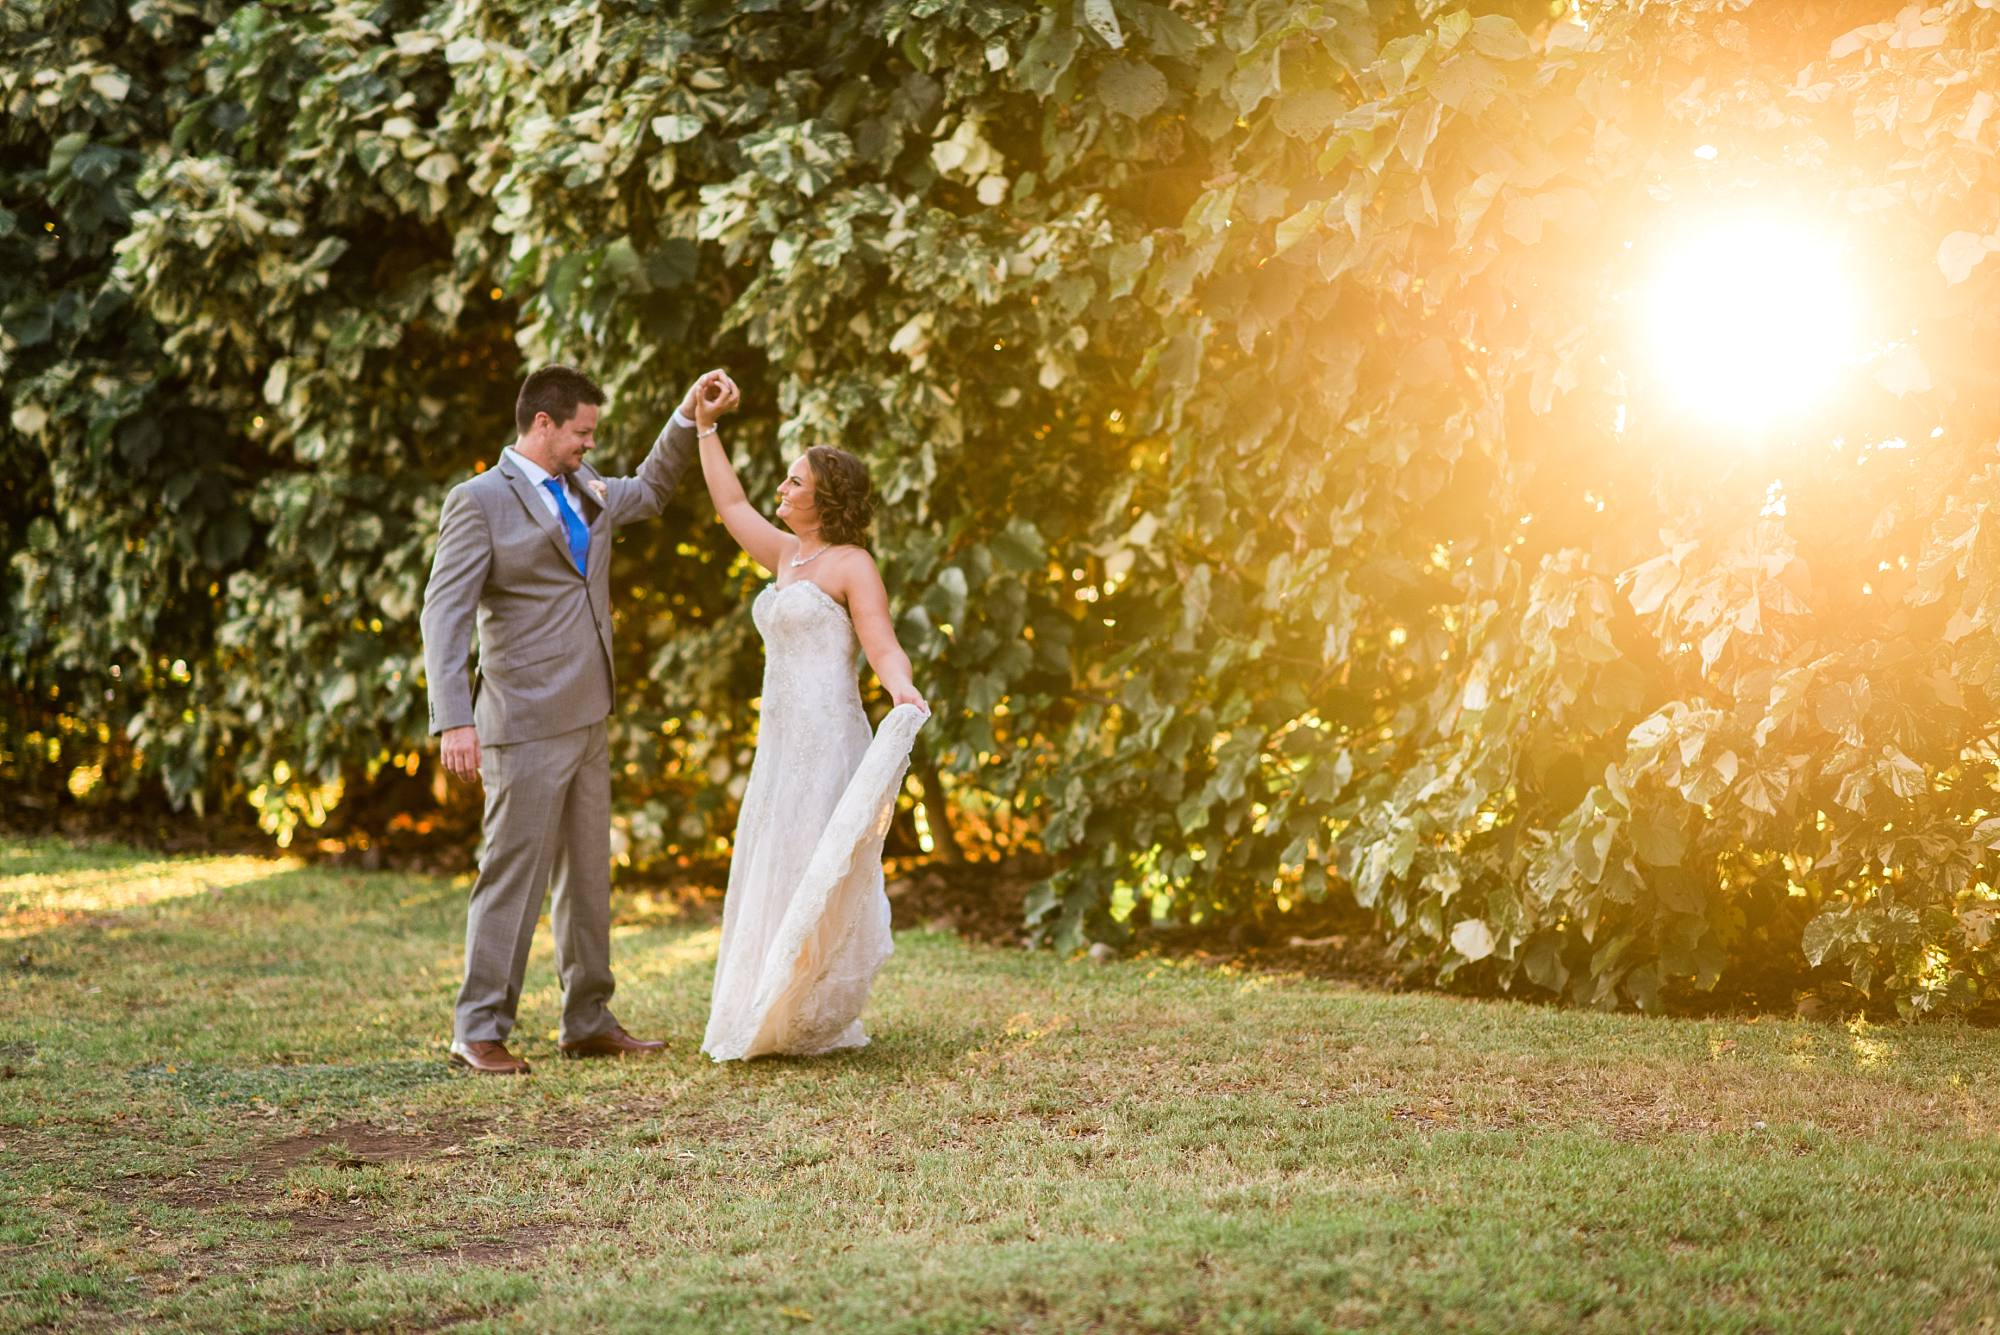 wedding couple dancing on the grass